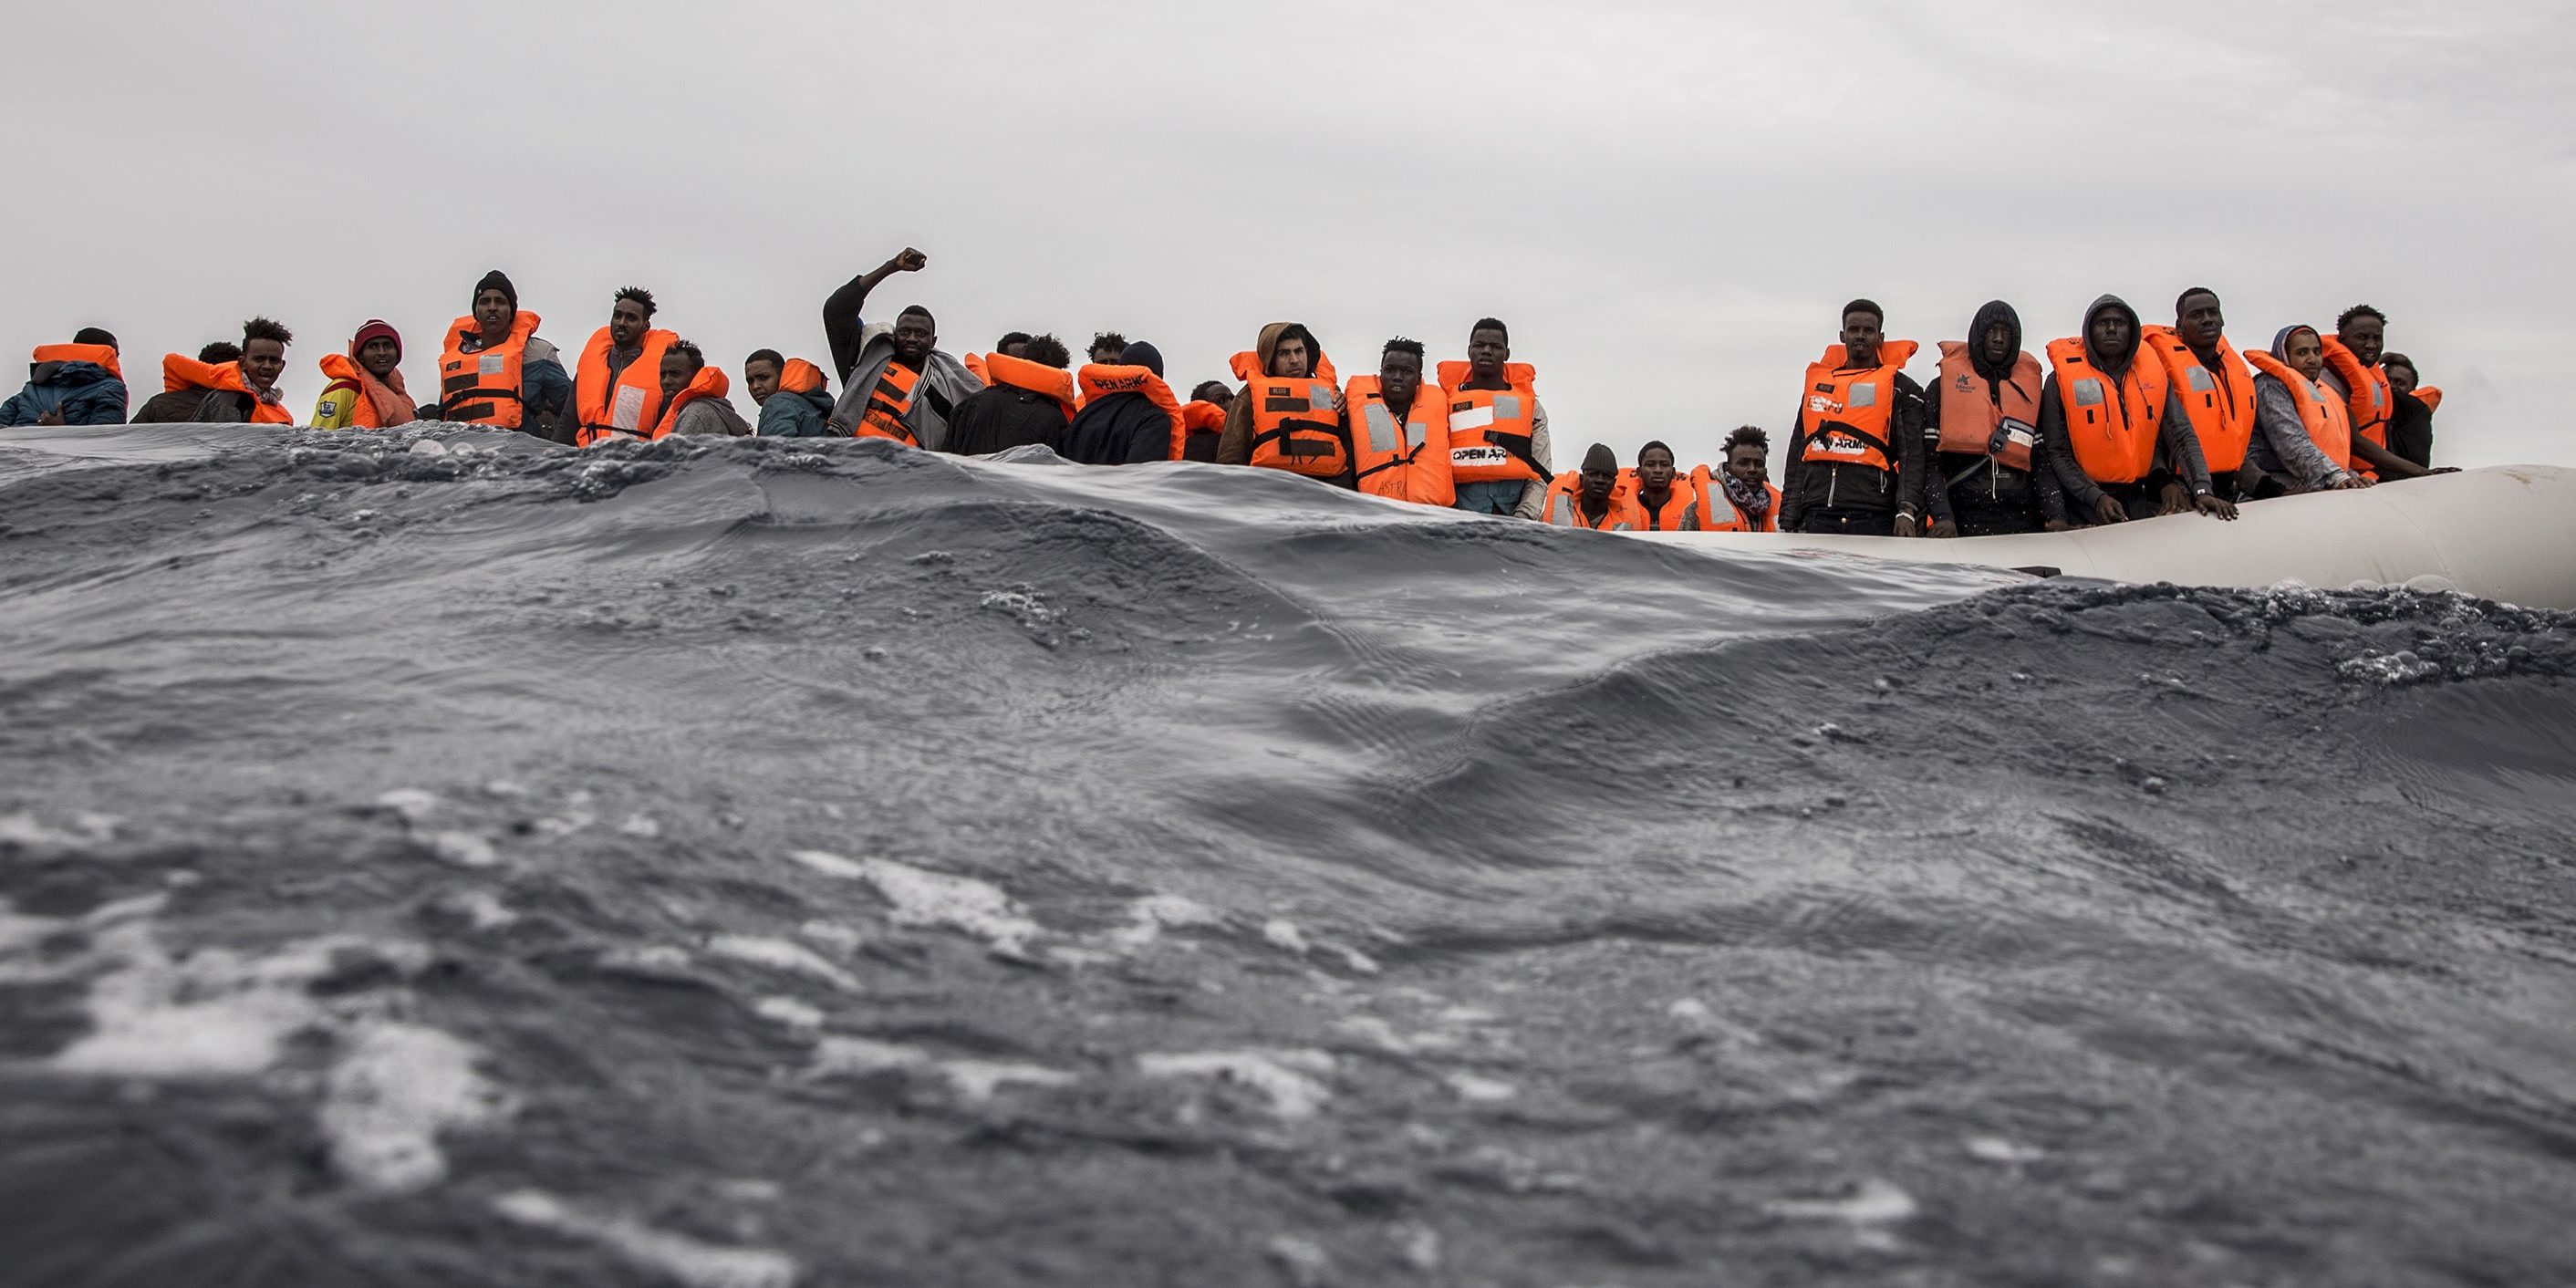 101 persons in a rubber boat was rescued by Proactiva Open Arms ONG in the Mediterranean Sea, 60 miles from Al-Khums, Libya.  In the rubber boat was people from Somalia, Nigeria, Mali, Guinea Conakry, Sudan, Ivory Coast, Niger, Camerun, Libya, Egipt and Yemen.  18 february 2018.  Photo: Olmo Calvo